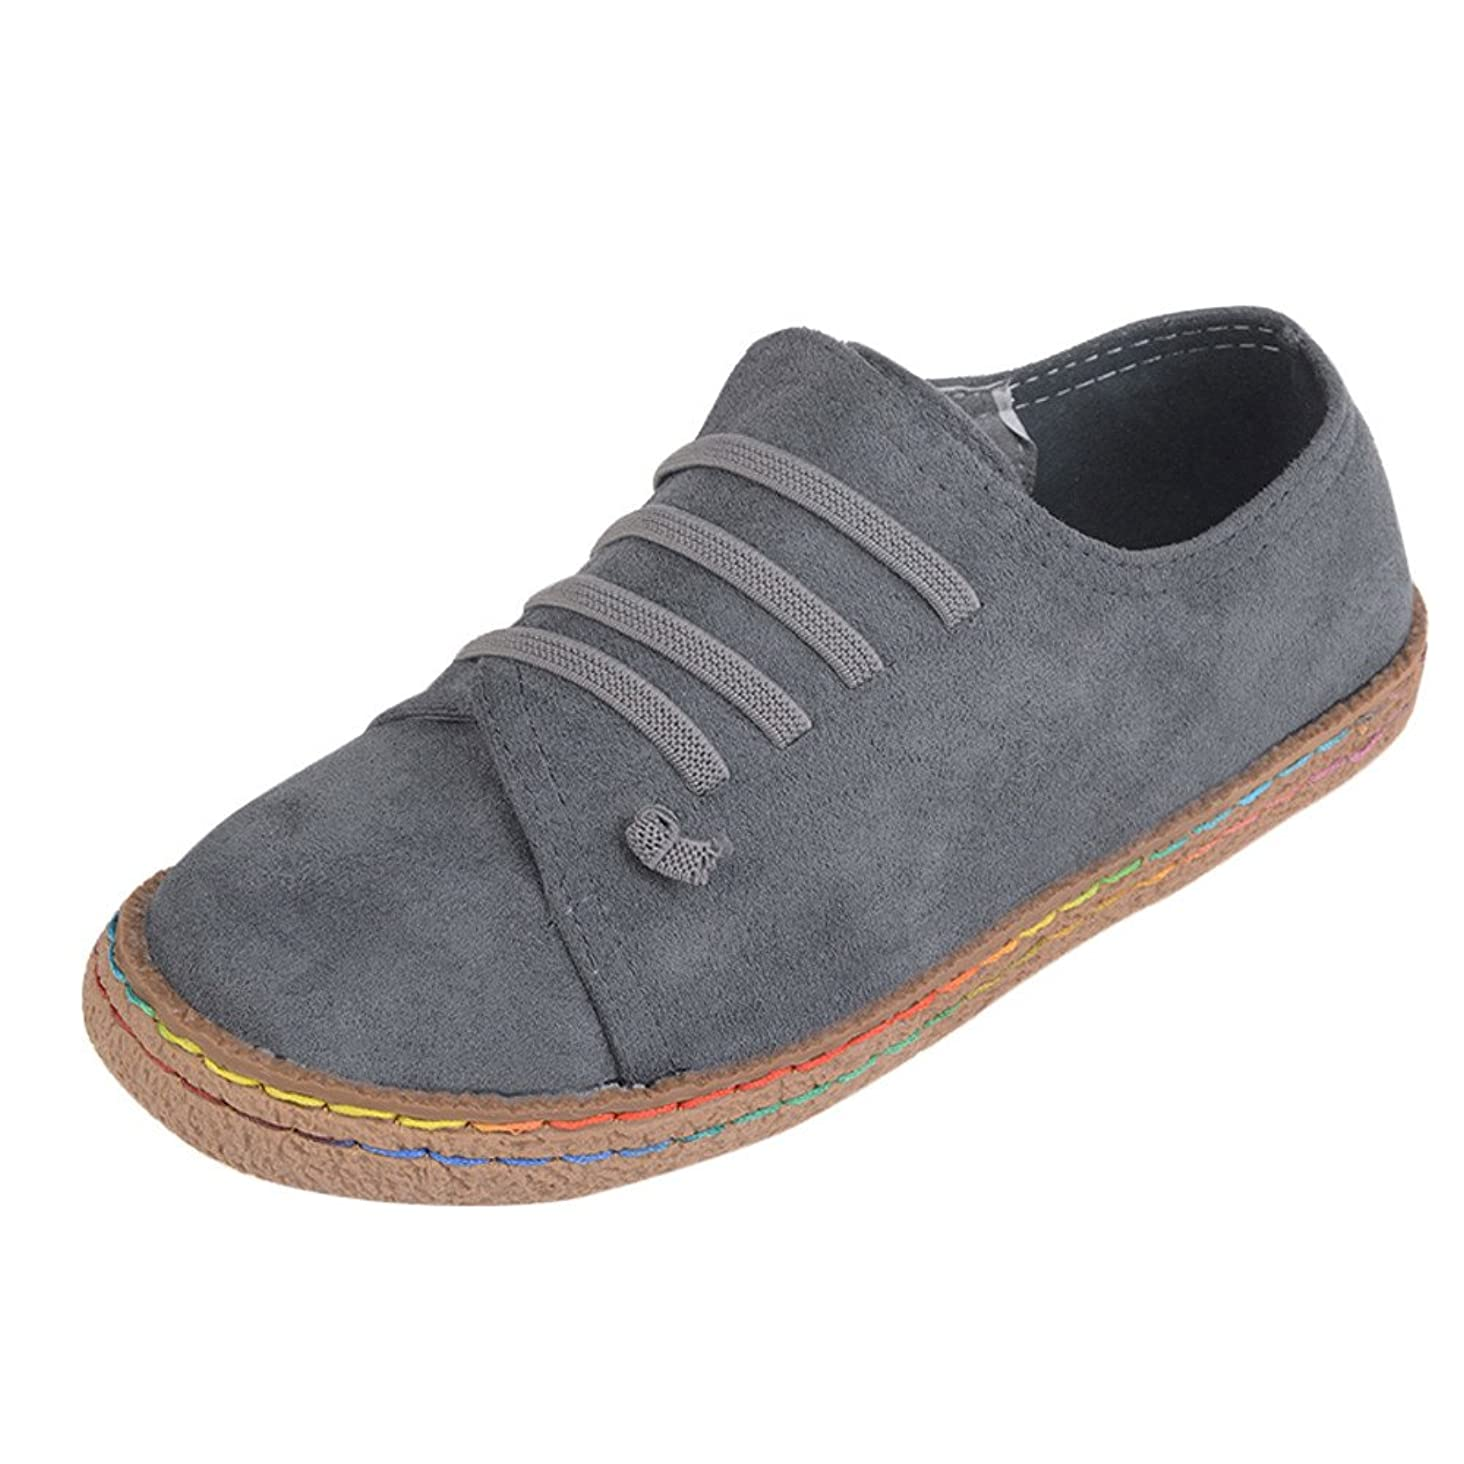 New in Respctful?Women's Low Top Lace-Up Espadrille Flatform Lace Up Sneaker Fashion Round Toe Flat Shoes